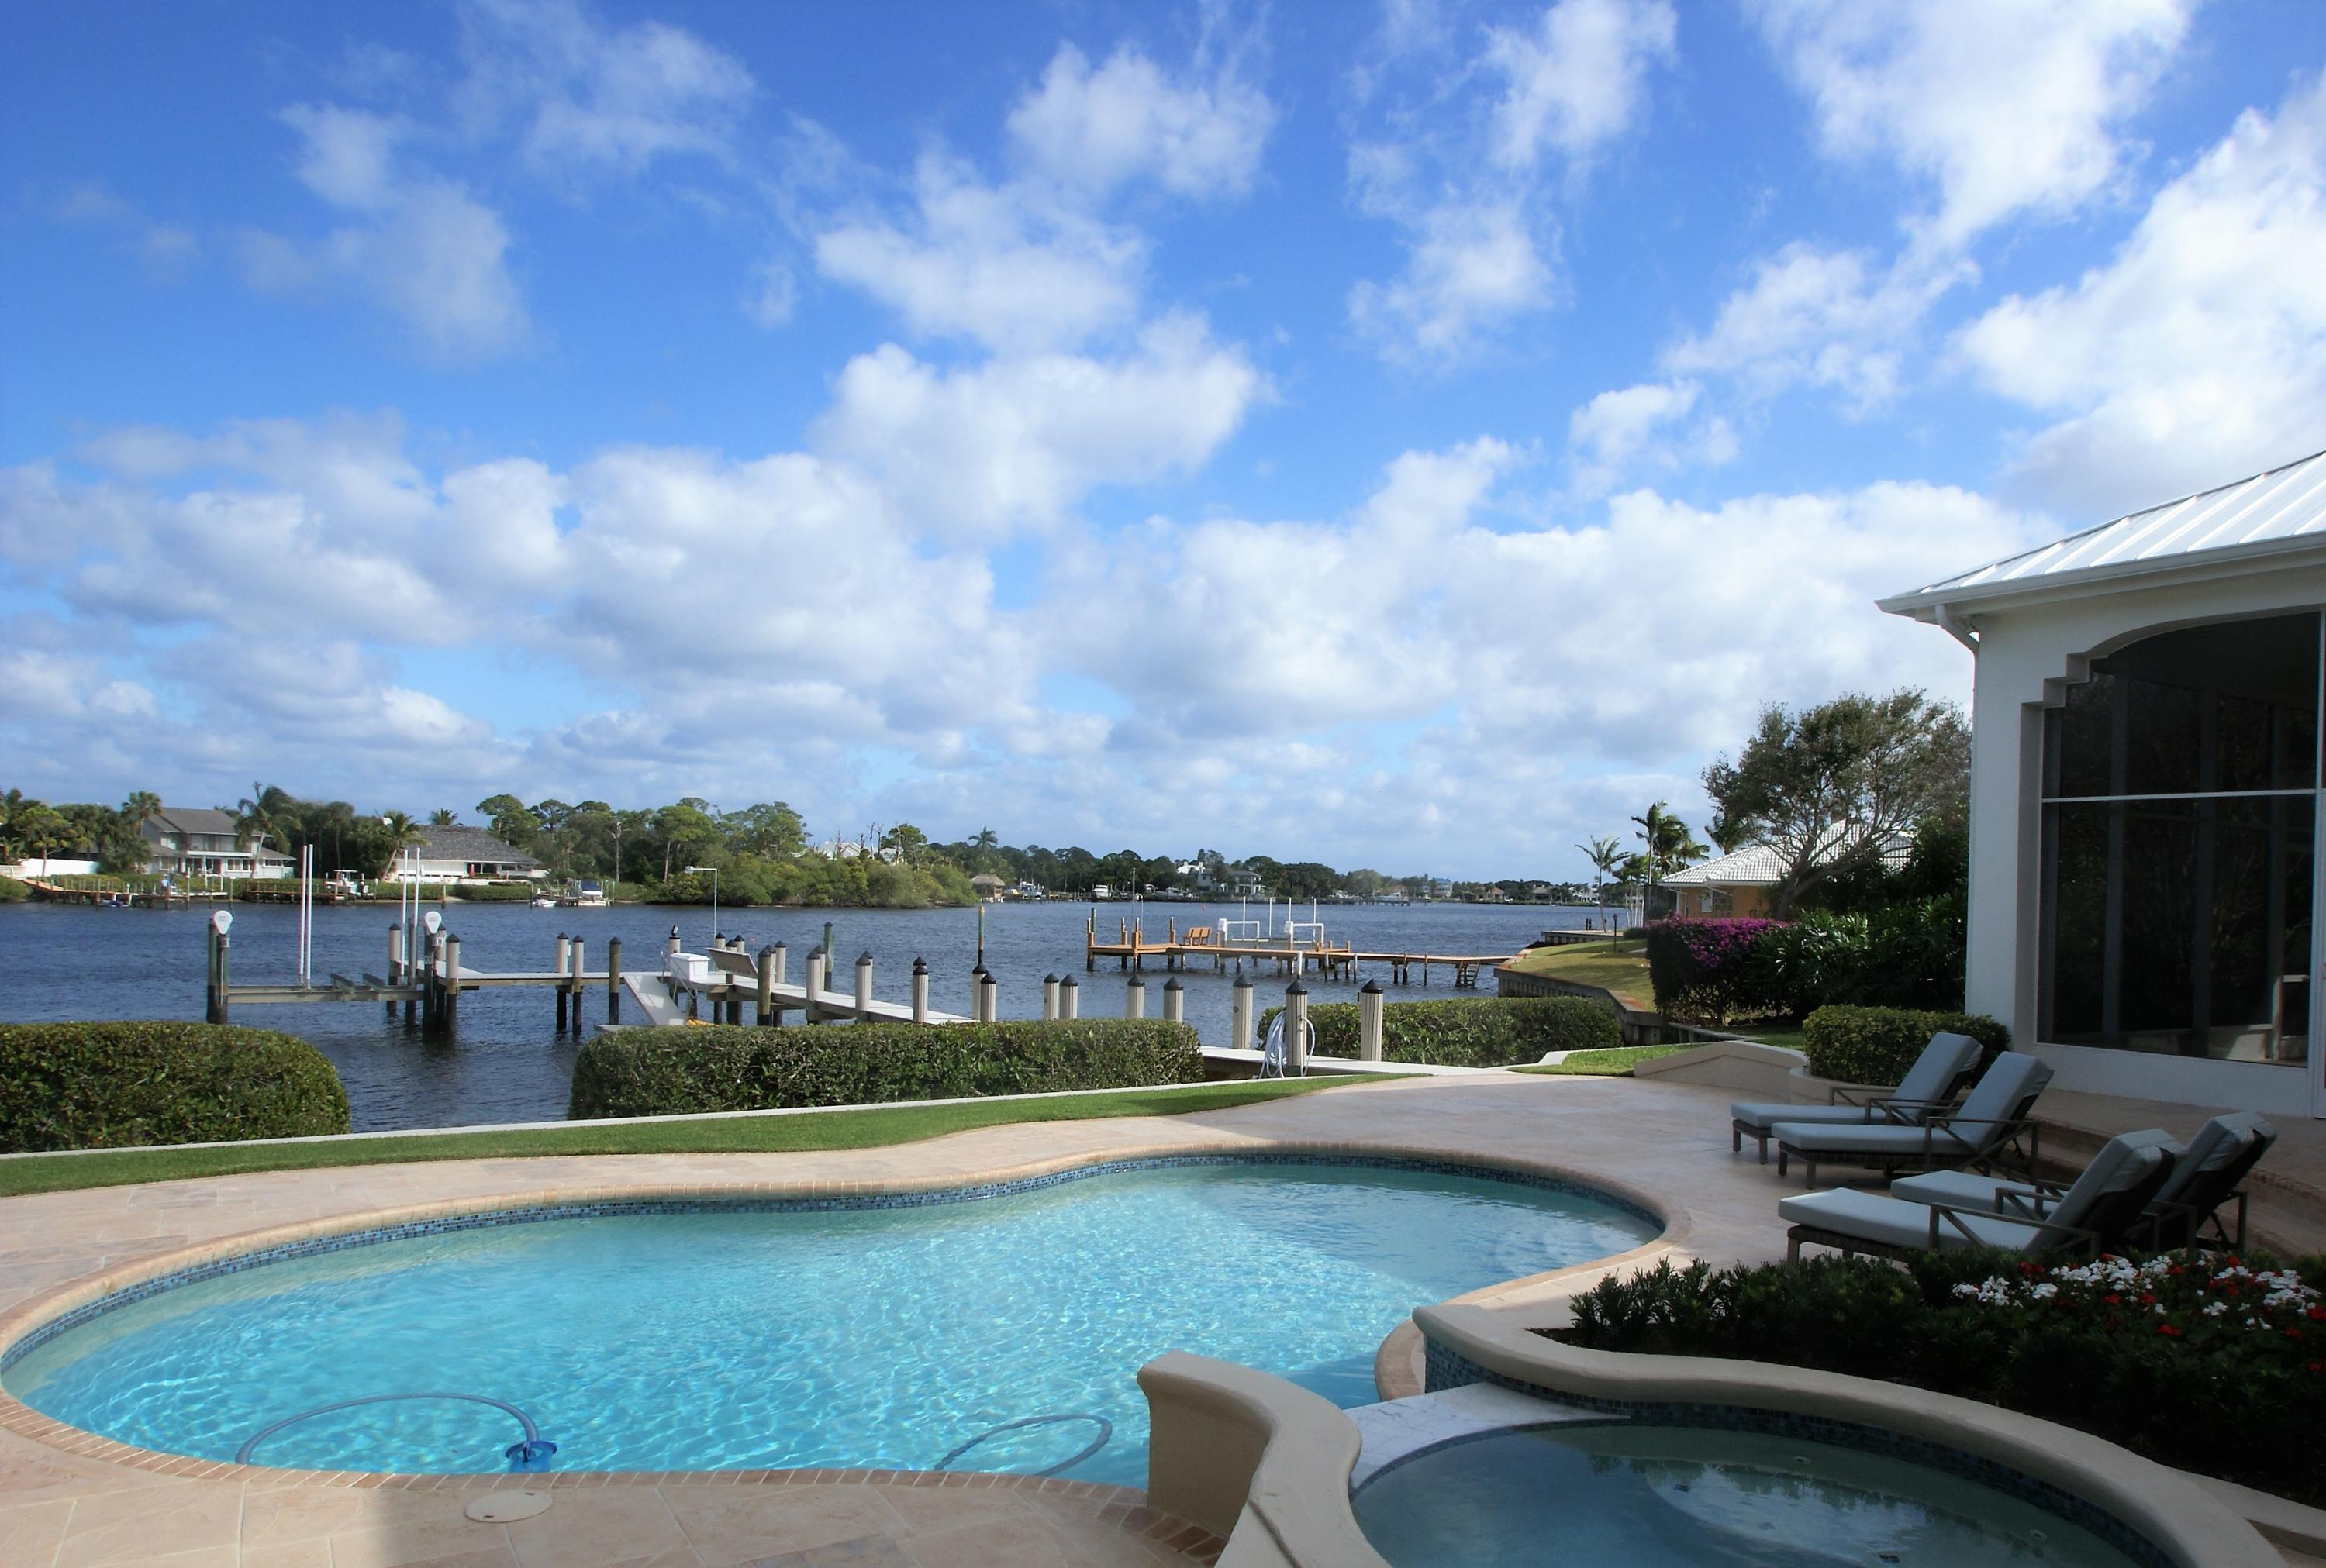 New Home for sale at 4 Eastwinds Circle in Tequesta